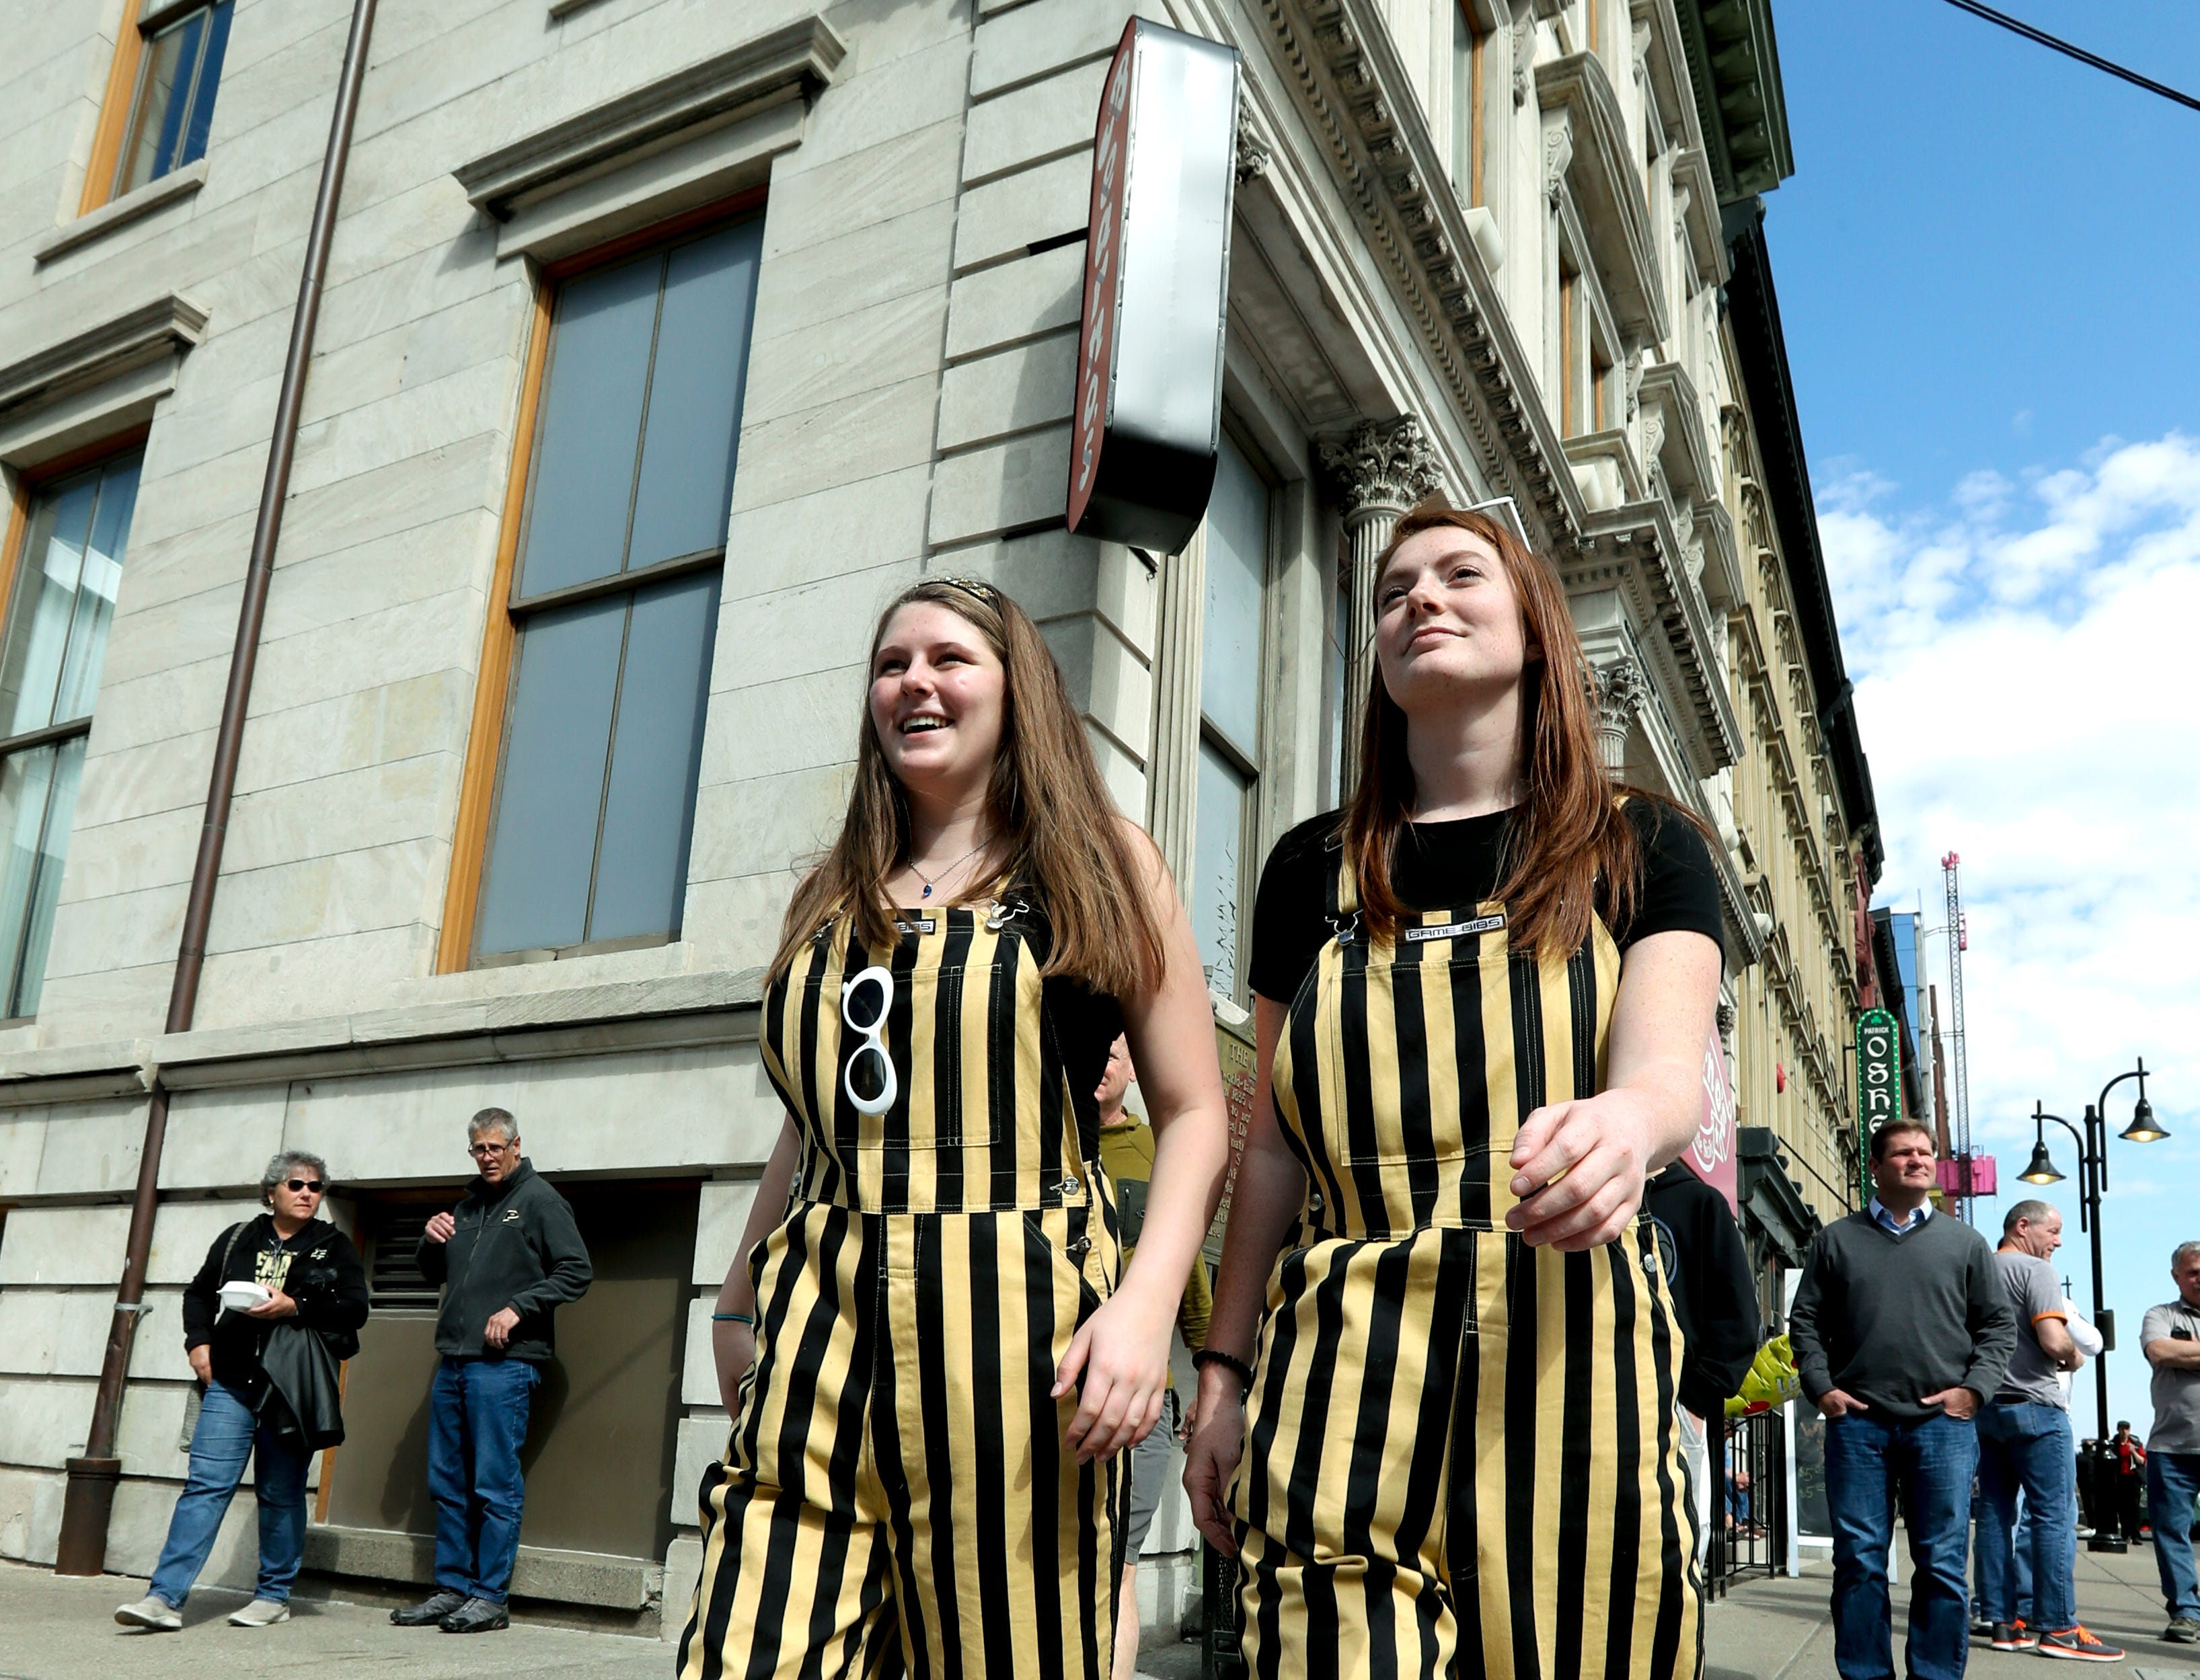 Purdue students Katie Larrabee and Madison Green walk around downtown Louisville on March 28. They are in town to watch their Boilermakers take on the Tennessee Volunteers in the NCAA Sweet 16.